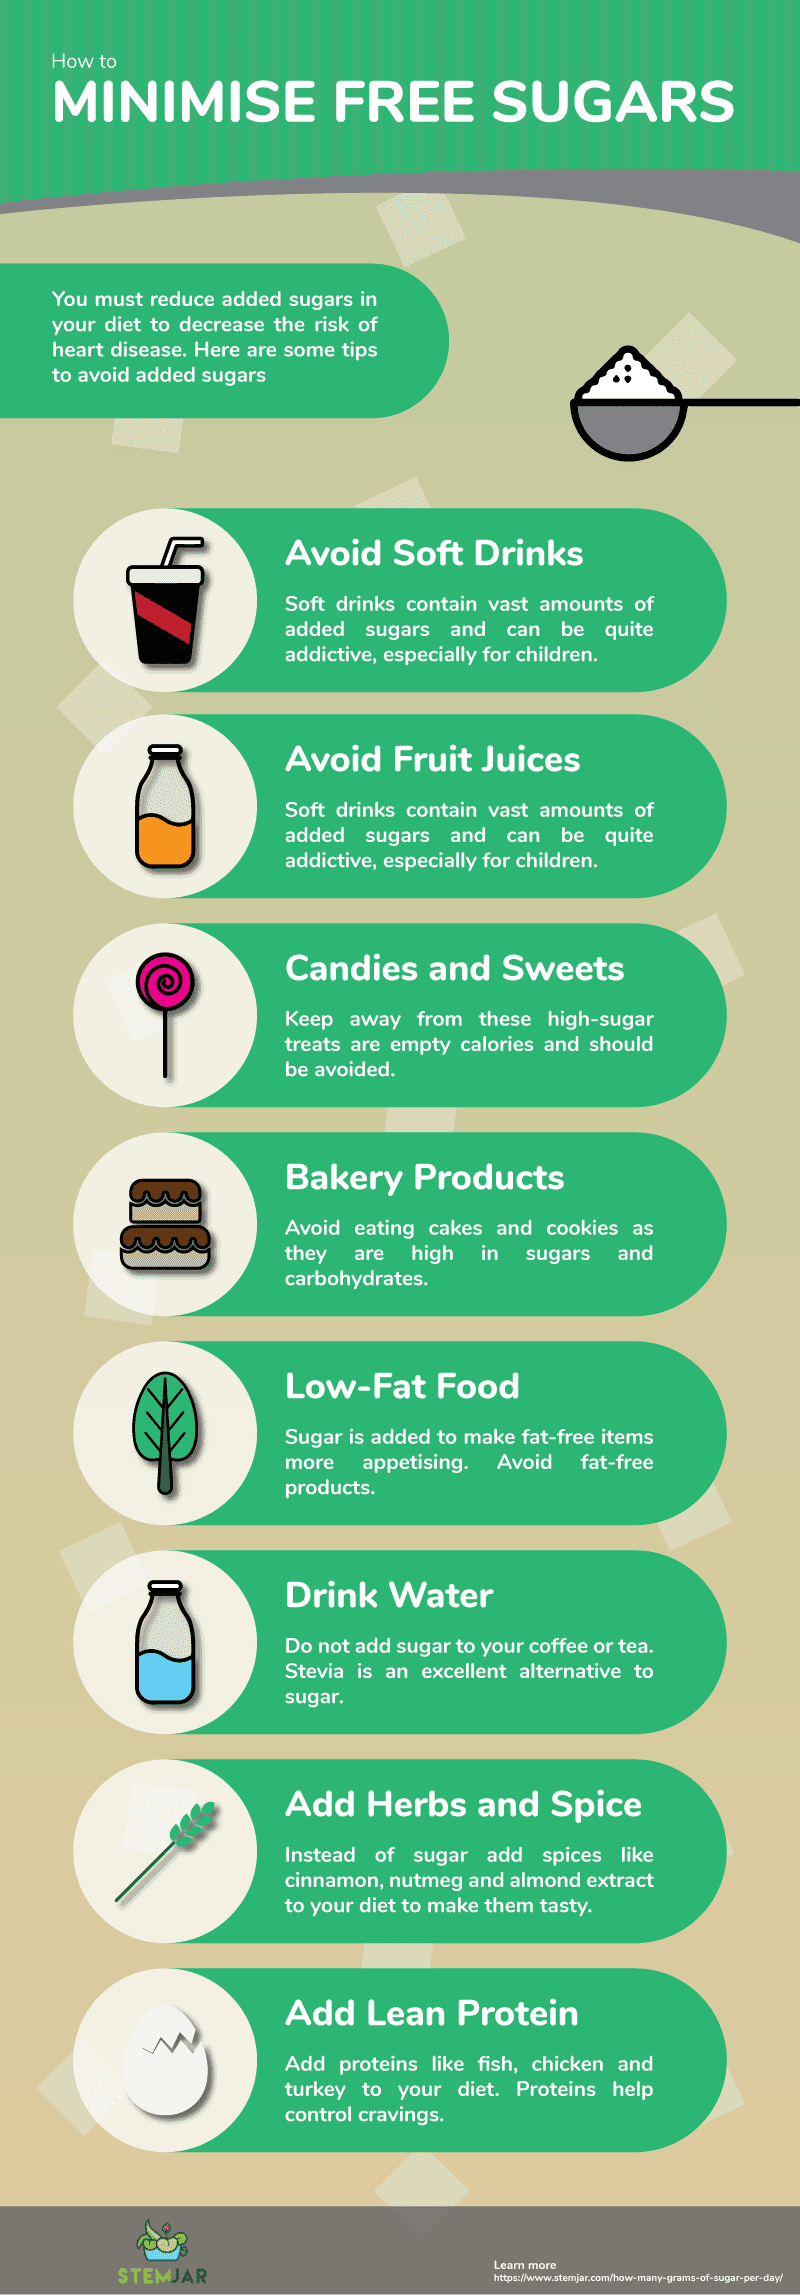 how to minimise free sugar info graphic